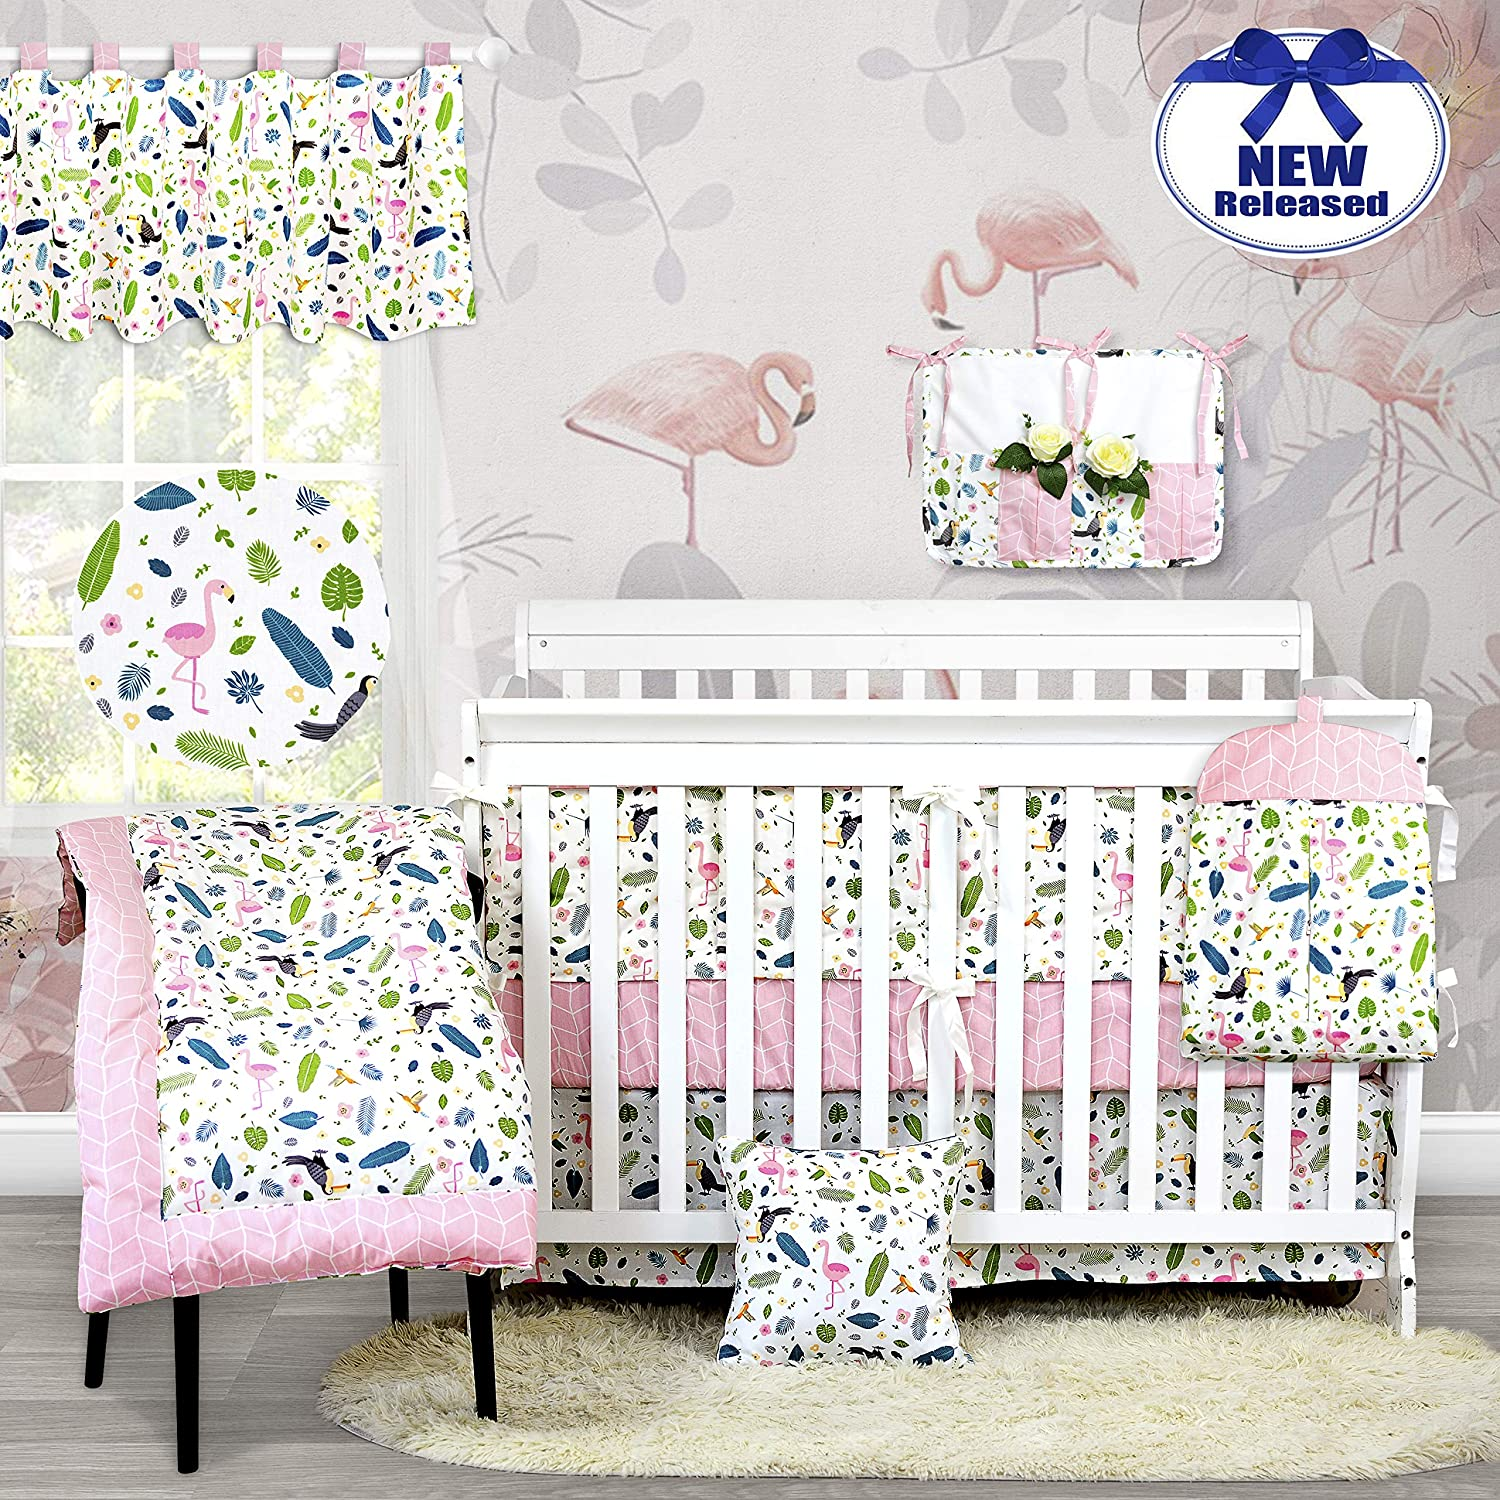 Brandream Feather Crib Bedding Sets for Girls Pink Flamingo Baby Nursery Bedding with Jungle Animals Print 11 Piece Crib Sets with Bumper Pads 100% Cotton, Baby Shower Gift